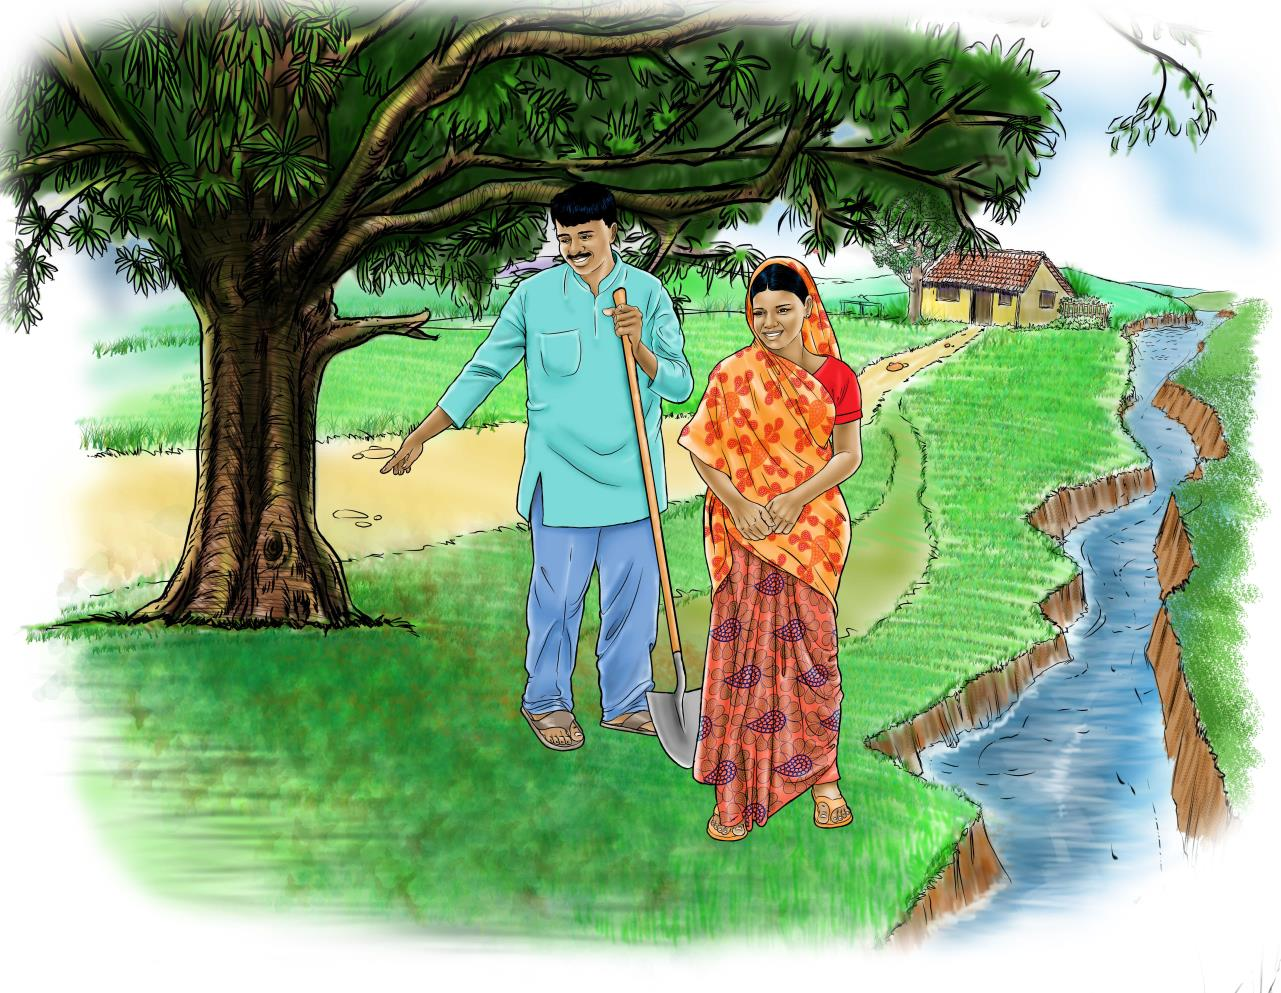 Illustrated image of a man and woman walking near a stream.